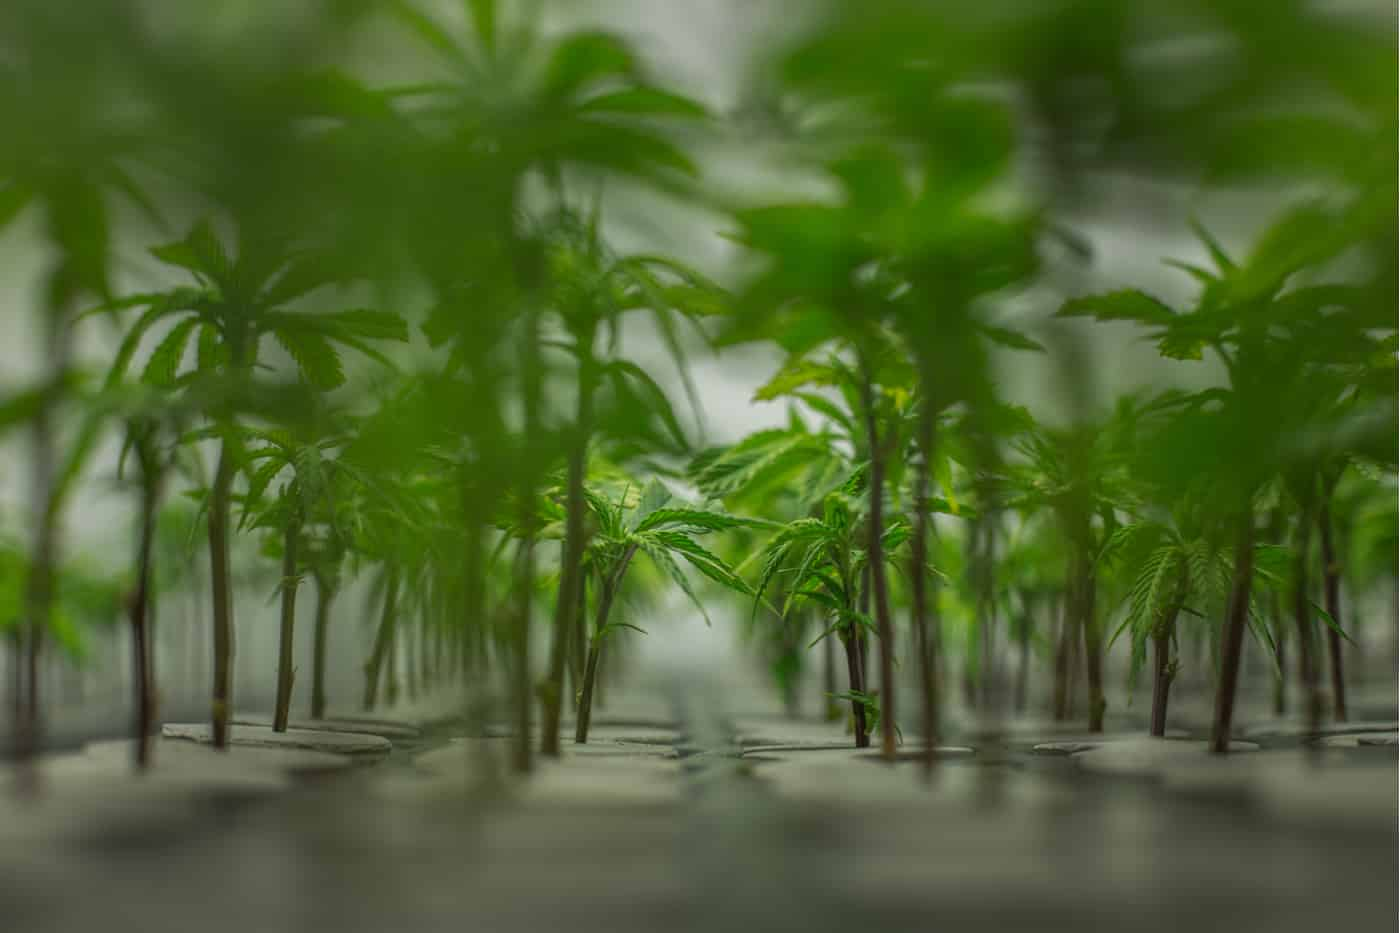 Plants in an environmentally controlled indoor grow